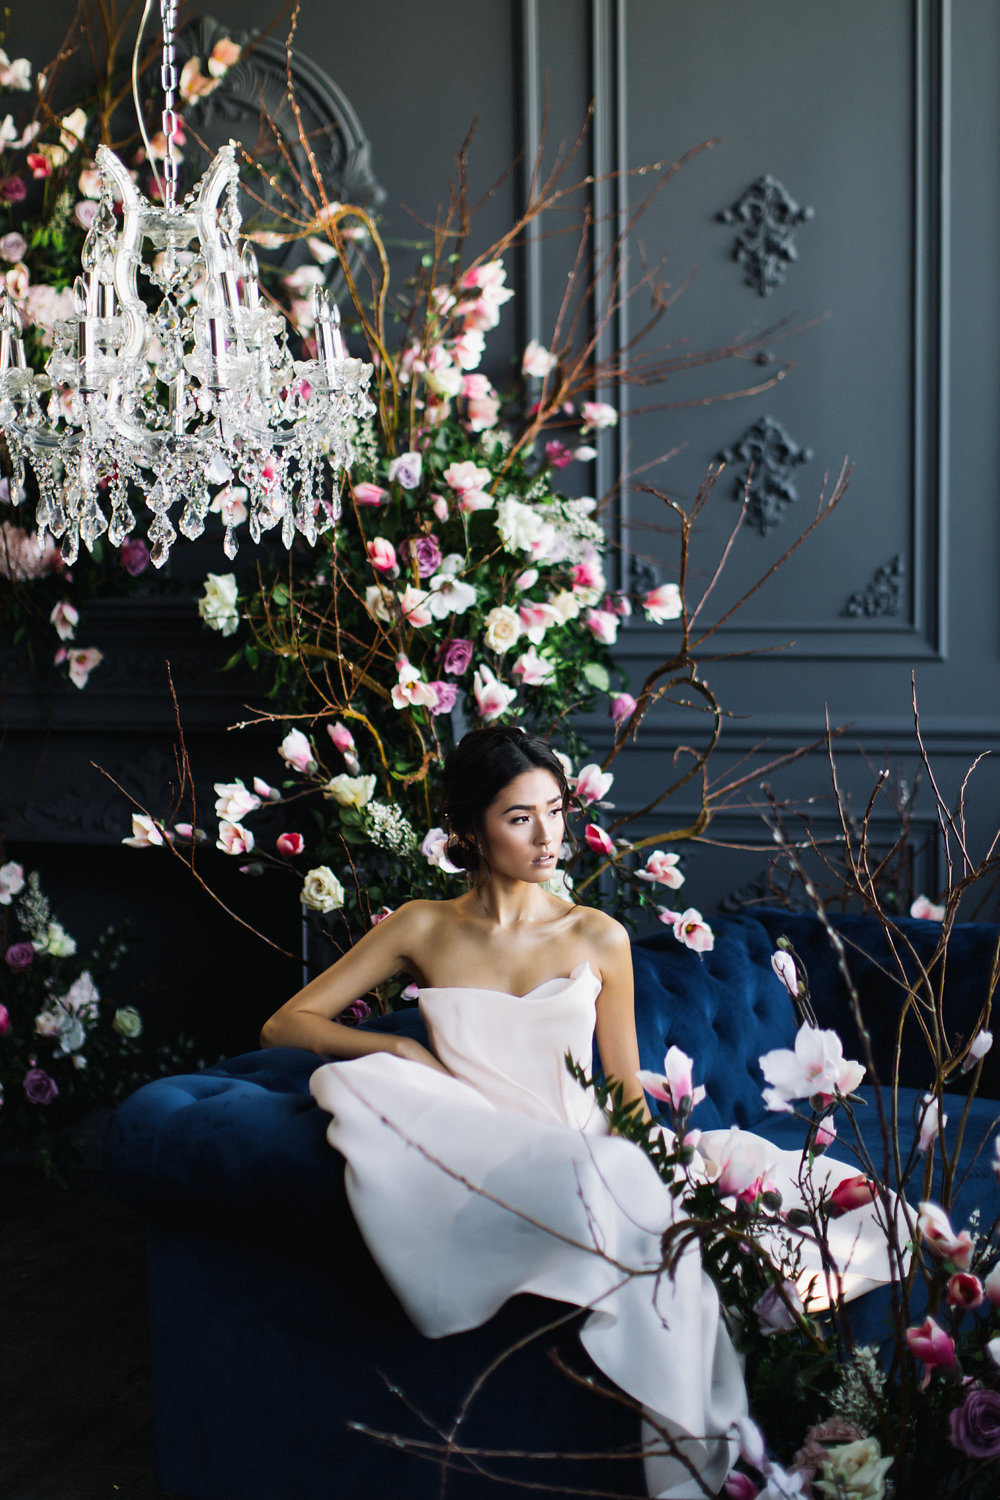 August In Bloom - Bride sitting - Magnolia Dreams (The Bridal Affair)